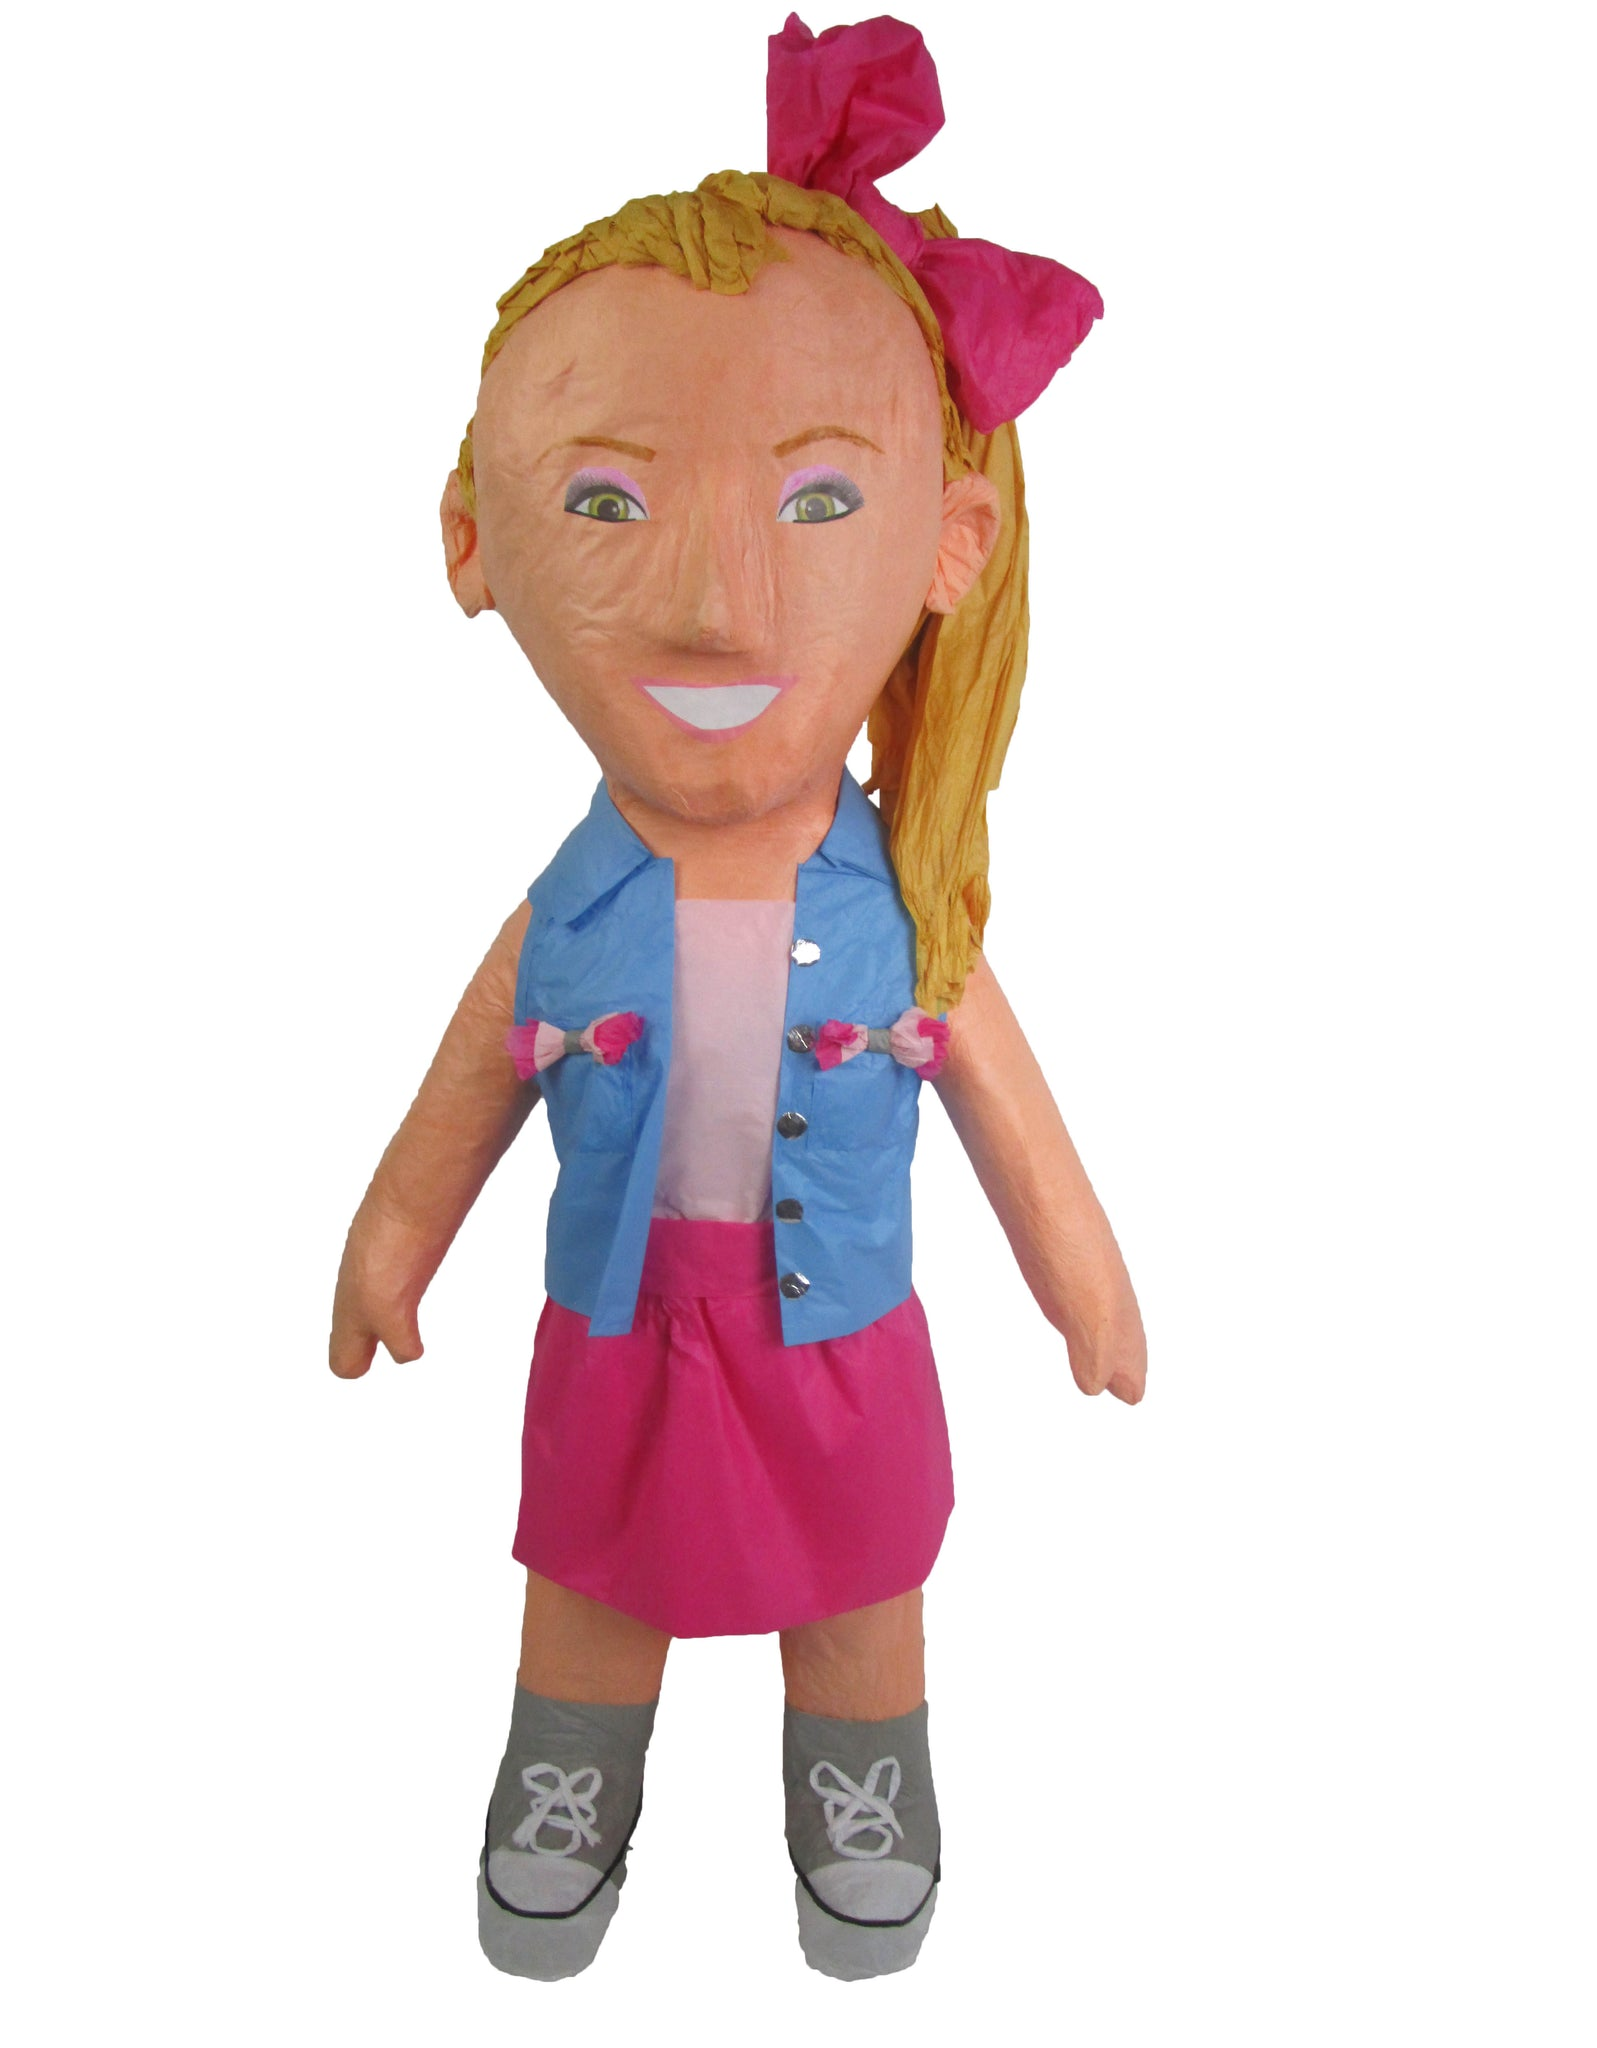 Custom Person Pinata - Jojo Siwa